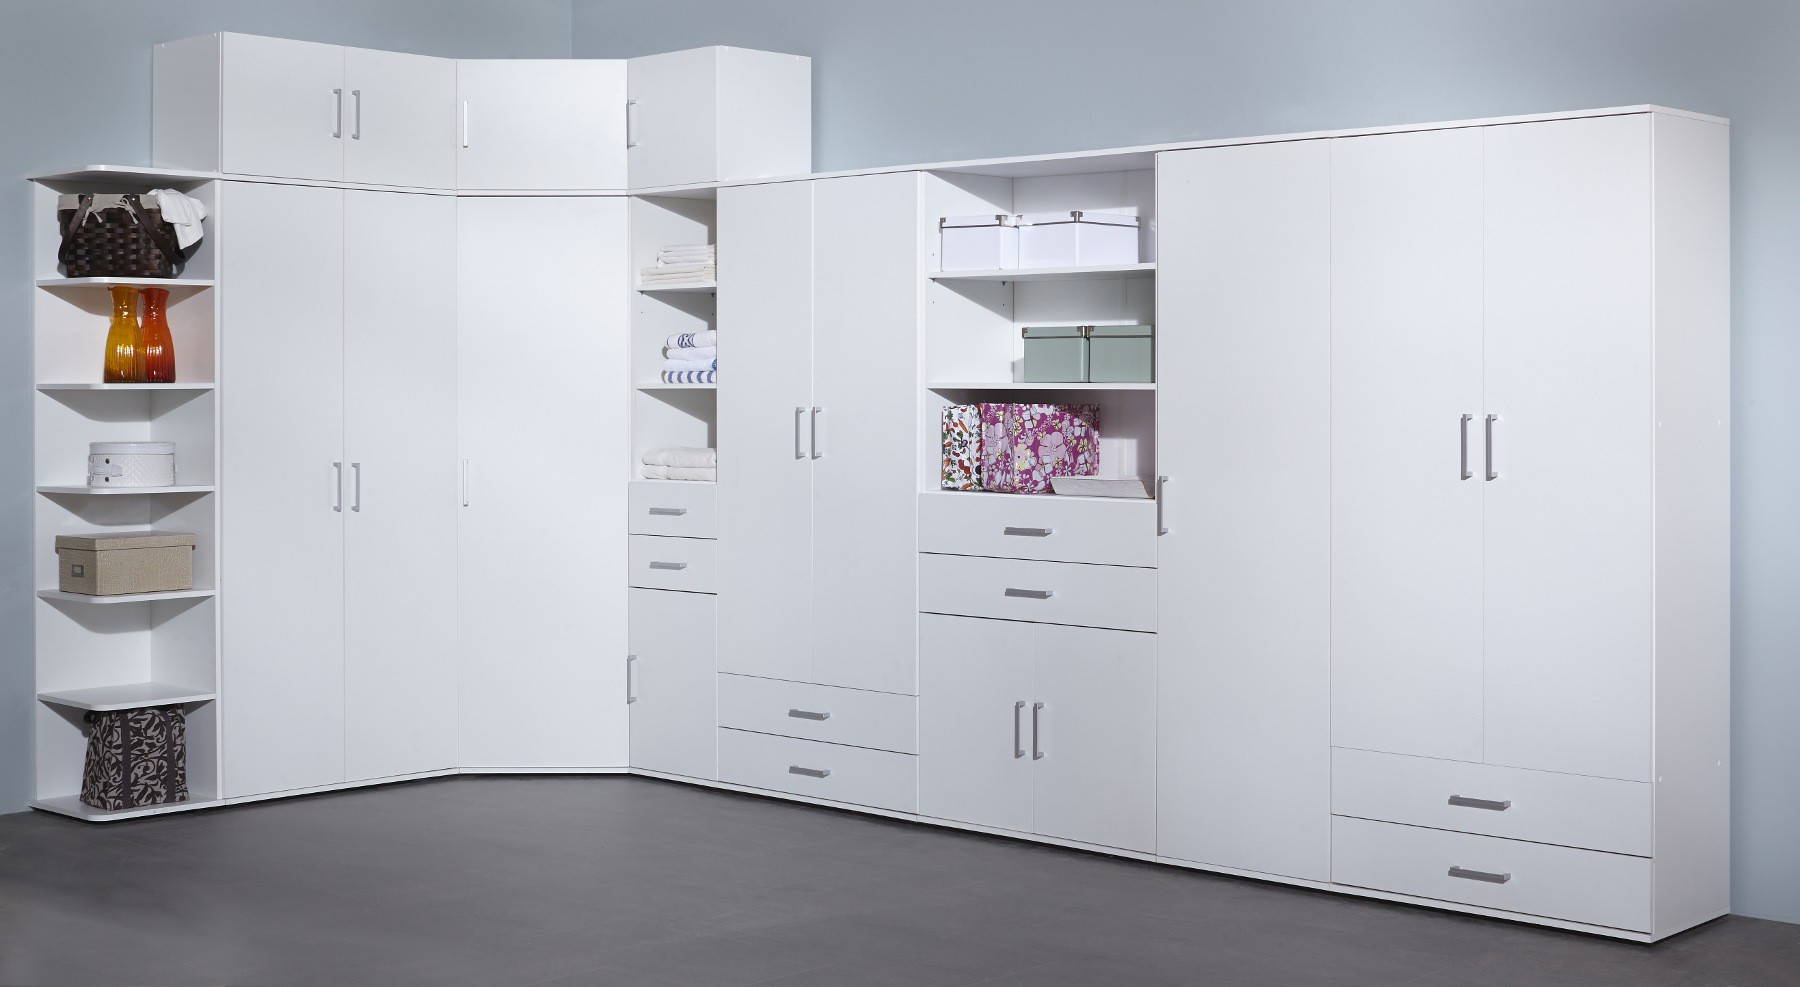 staubsauger besenschrank mehrzweckschrank putzschrank hochschrank weiss ebay. Black Bedroom Furniture Sets. Home Design Ideas